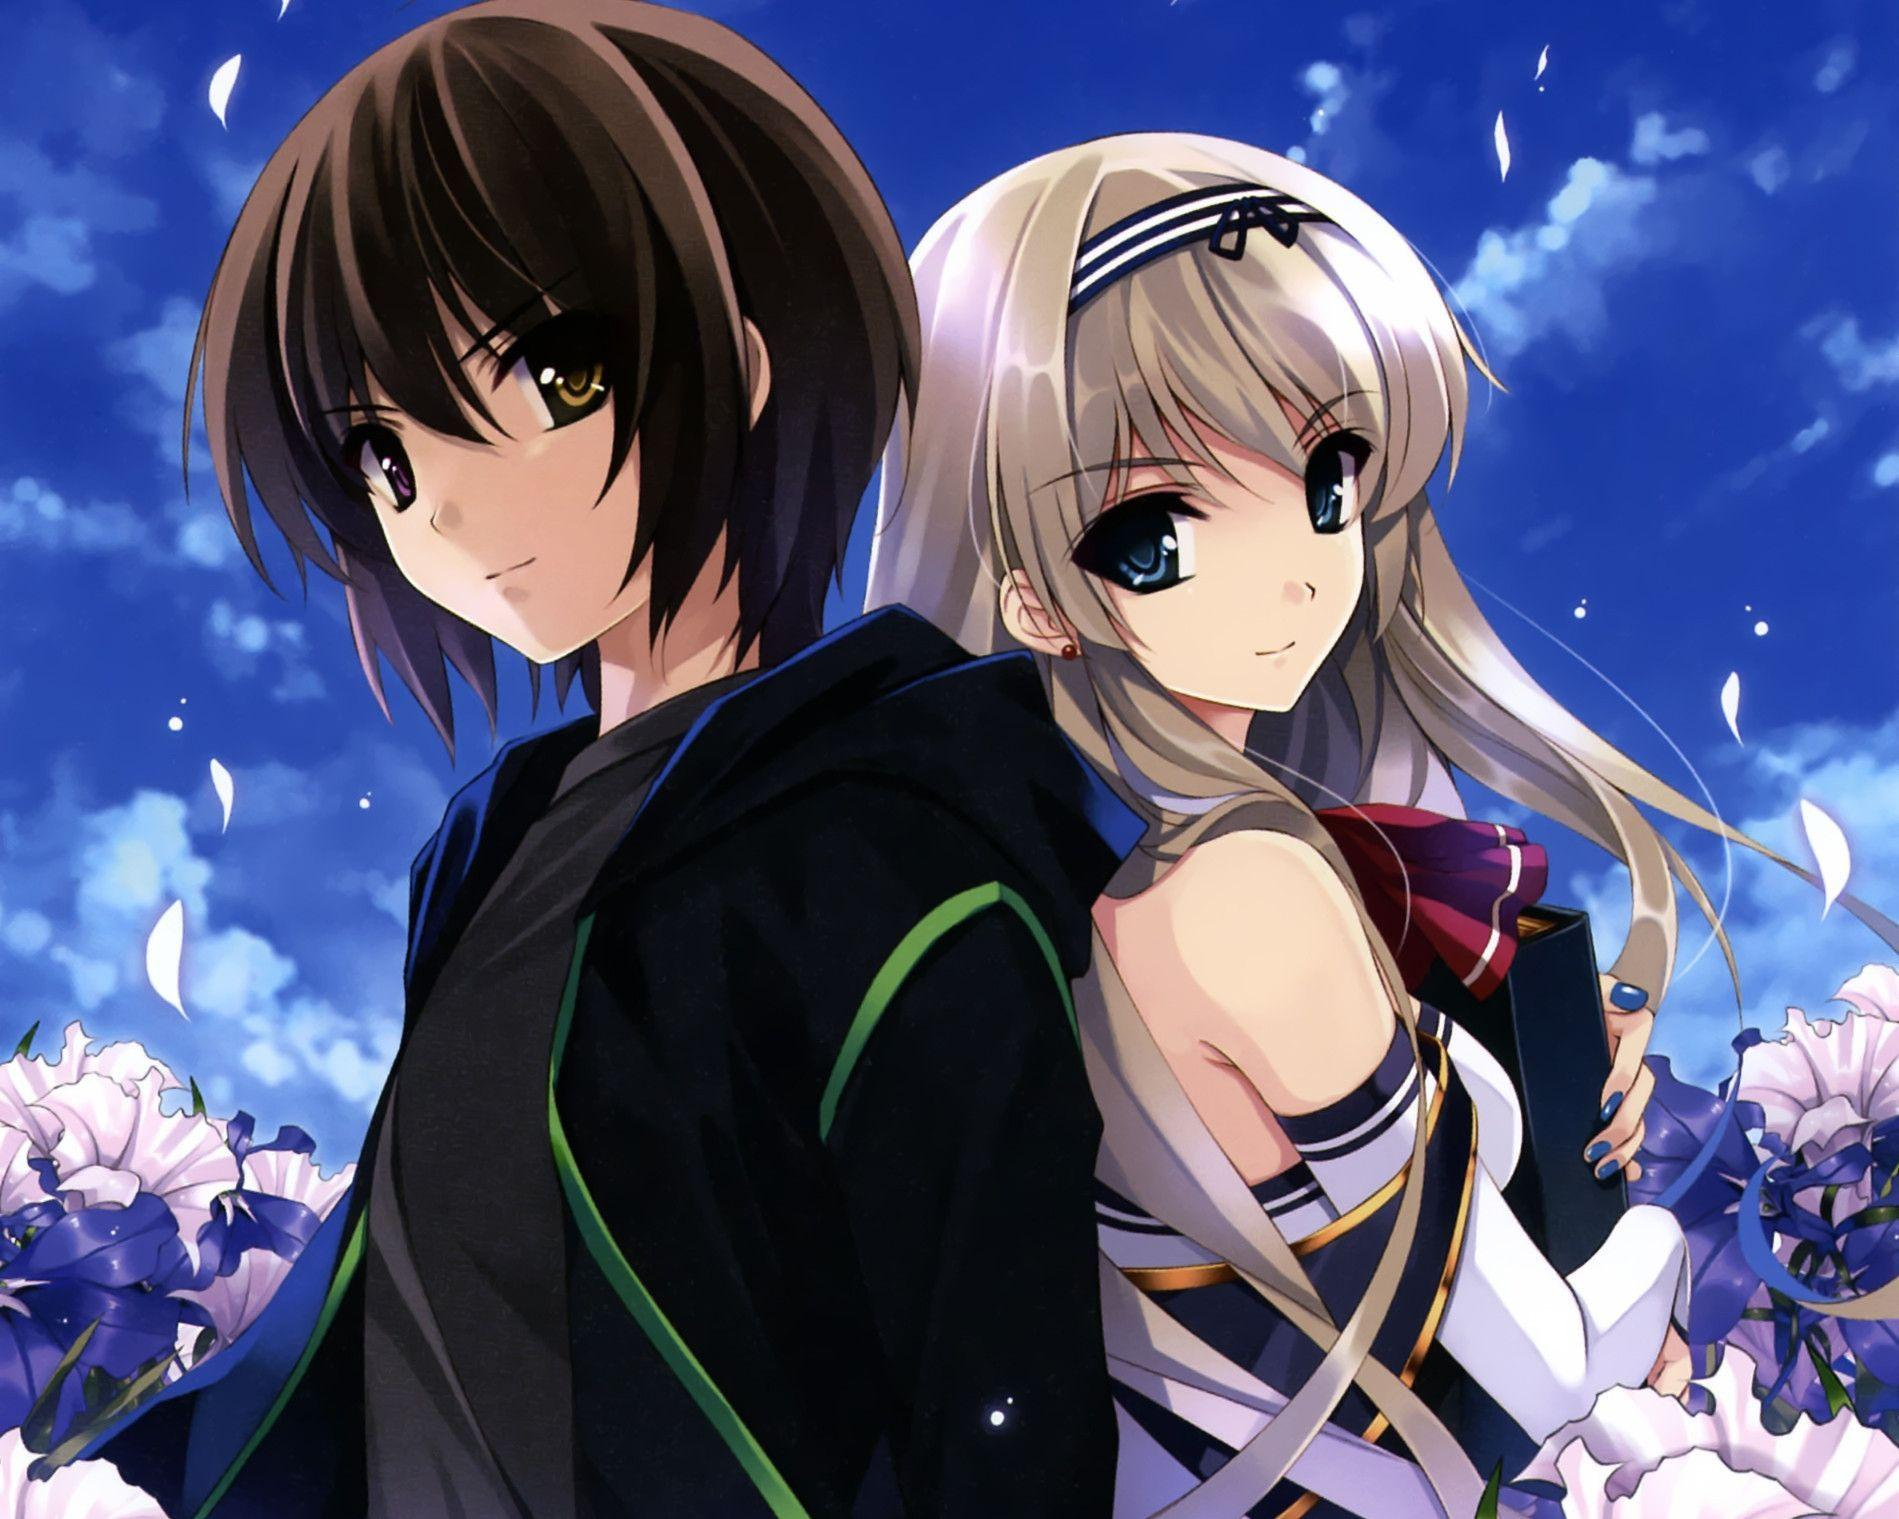 Download Gambar Anime Couple Blog Osobisty Zblogowani